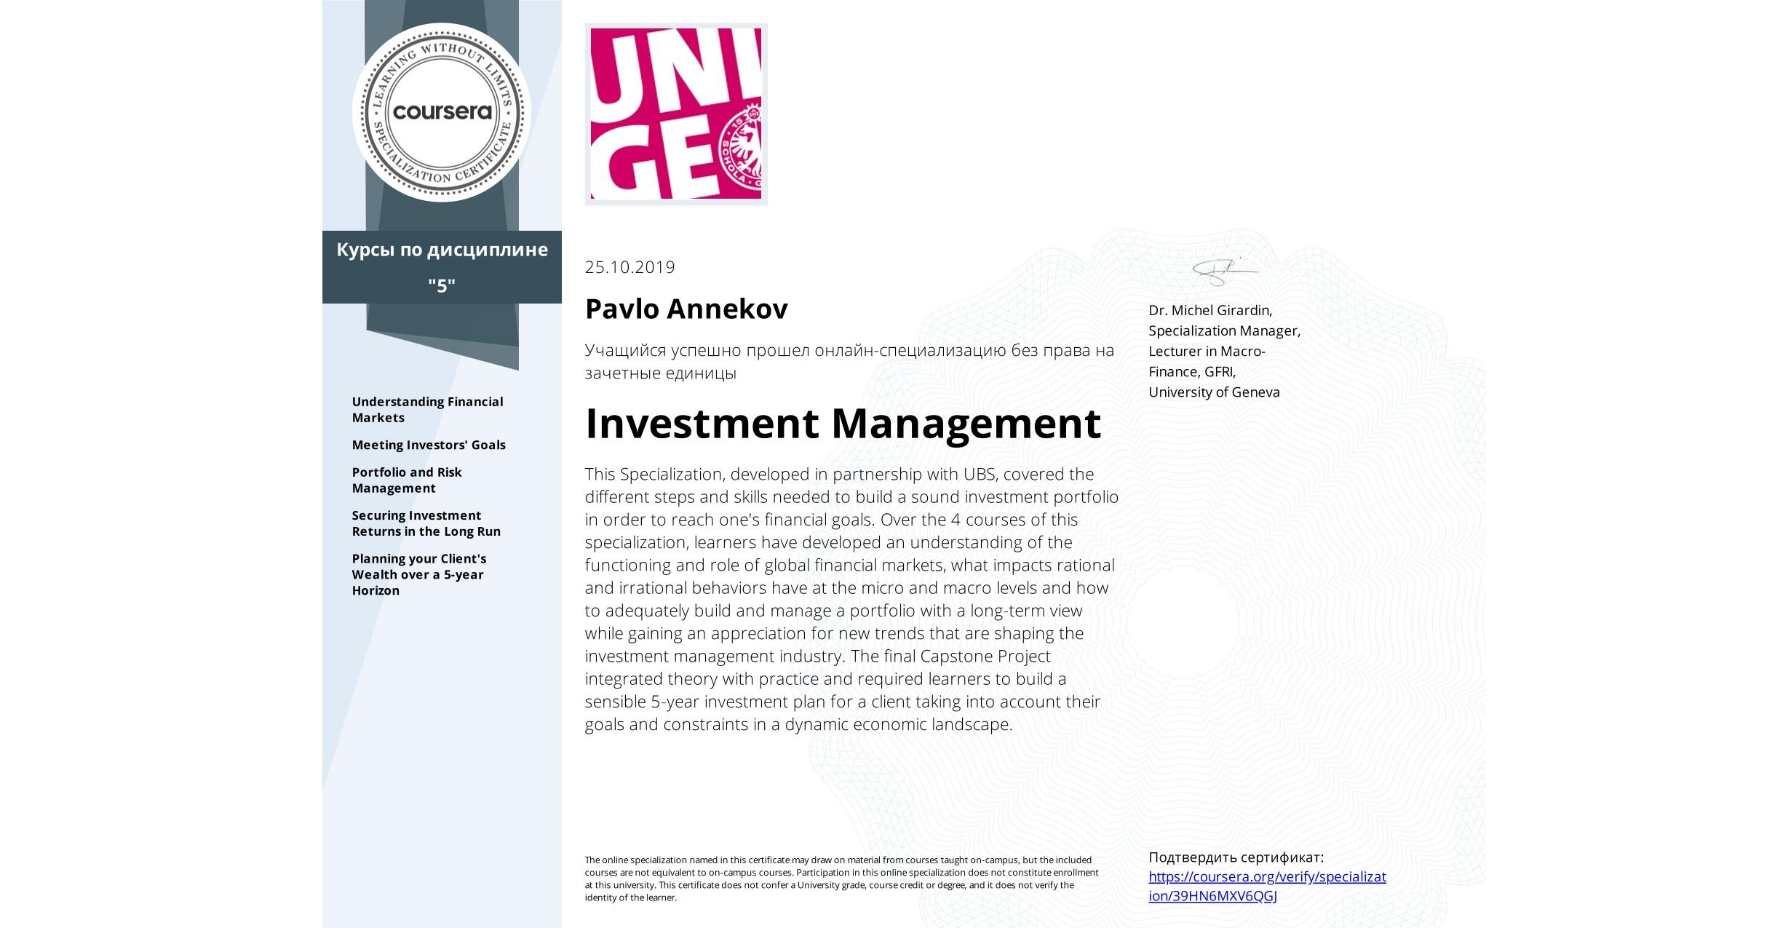 View certificate for Pavlo Annekov, Investment Management, offered through Coursera. This Specialization, developed in partnership with UBS, covered the different steps and skills needed to build a sound investment portfolio in order to reach one's financial goals.  Over the 4 courses of this specialization, learners have developed an understanding of the functioning and role of global financial markets, what impacts rational and irrational behaviors have at the micro and macro levels and how to adequately build and manage a portfolio with a long-term view while gaining an appreciation for new trends that are shaping the investment management industry.  The final Capstone Project integrated theory with practice and required learners to build a sensible 5-year investment plan for a client taking into account their goals and constraints in a dynamic economic landscape.